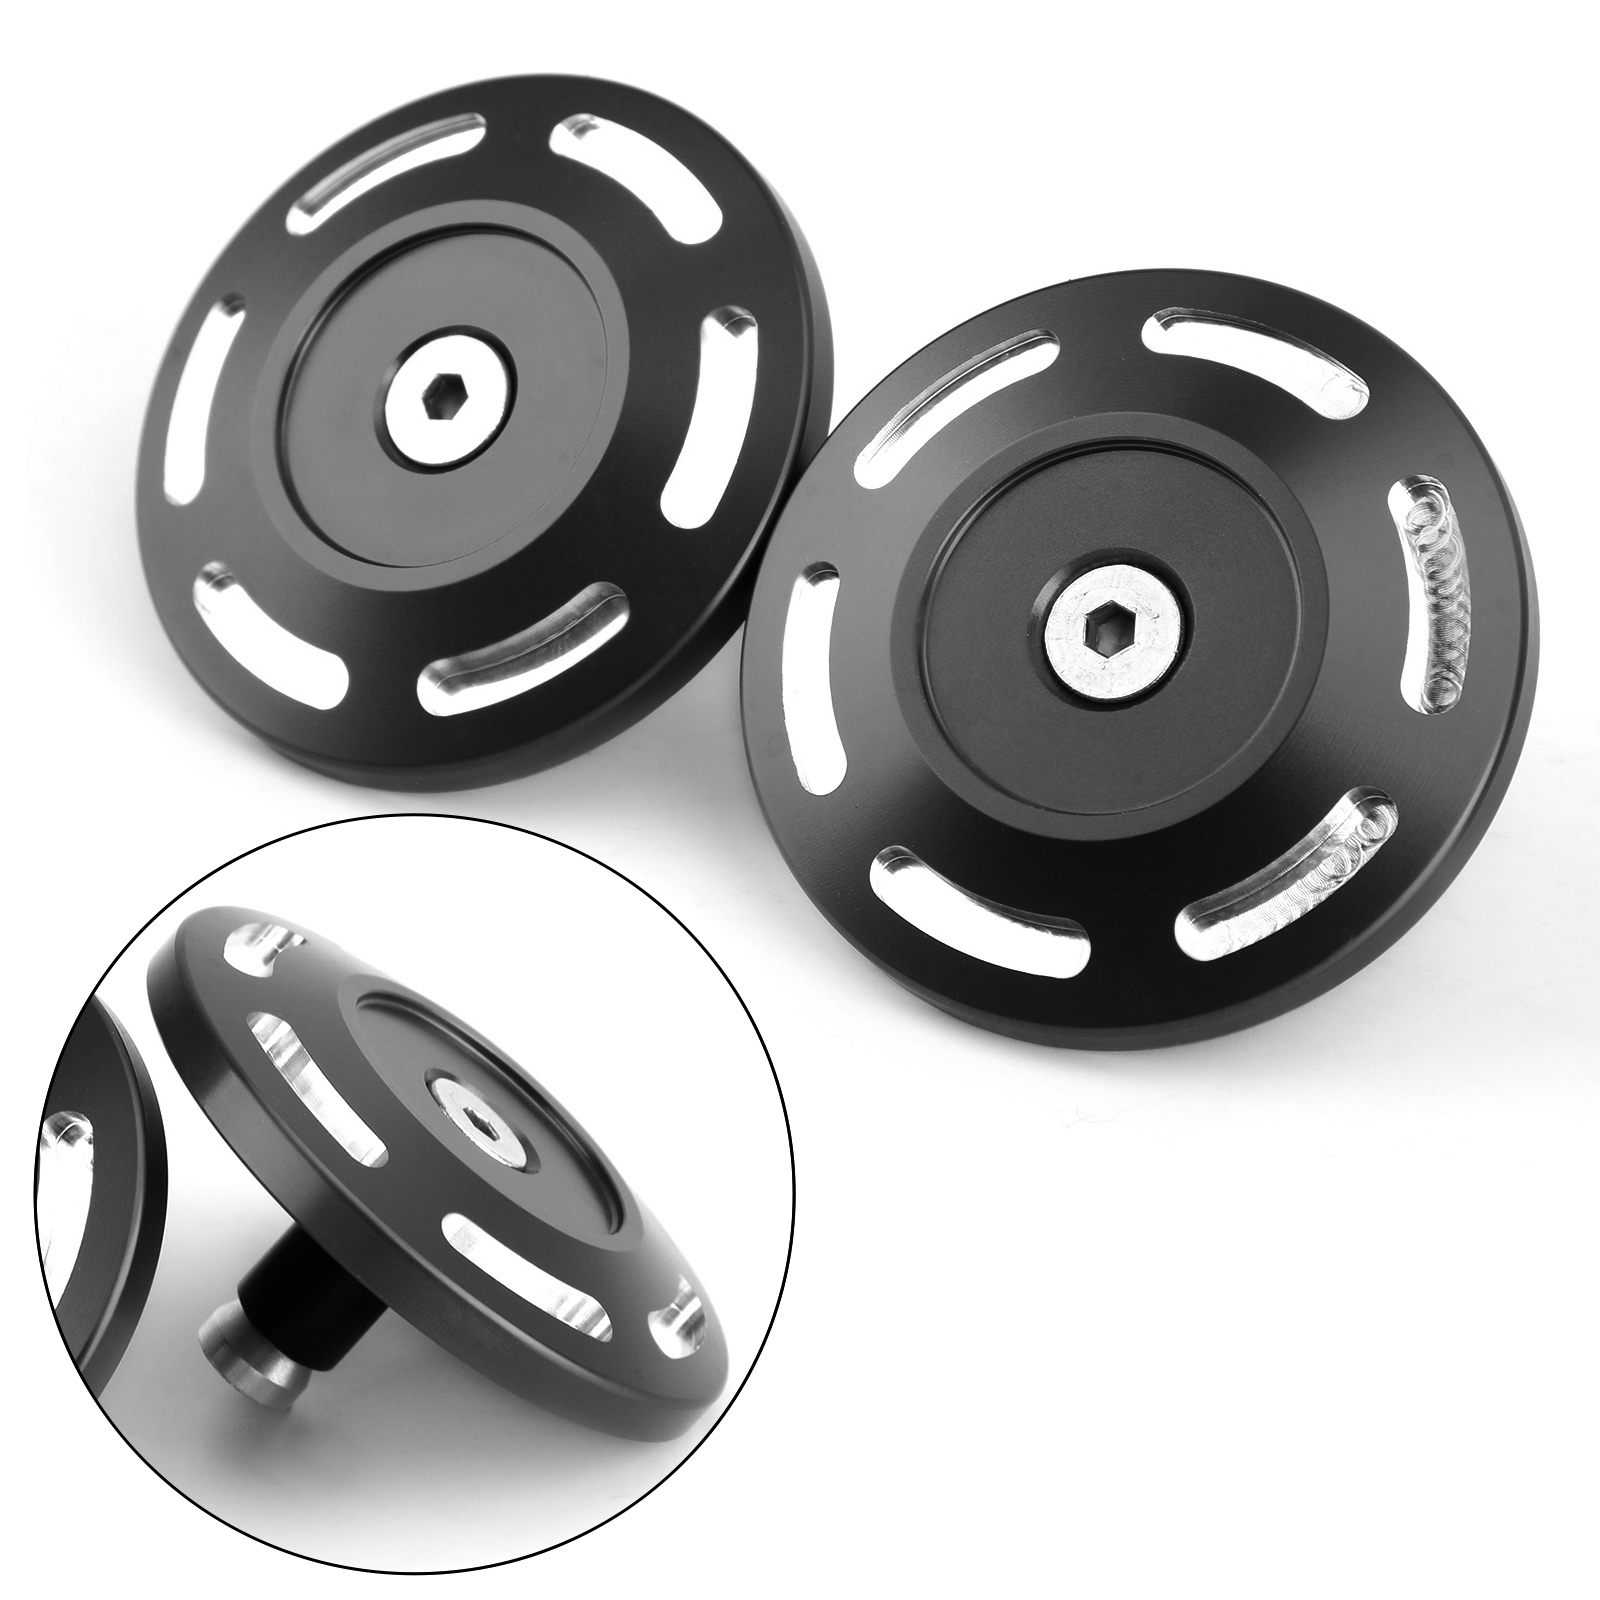 Artudatech 2x Billet Aluminum Frame Plug Cap Cover for BMW S1000XR S1000 <font><b>S</b></font> <font><b>1000</b></font> <font><b>XR</b></font> 2015 2016 2017 2018 2019 2020 Accessories image